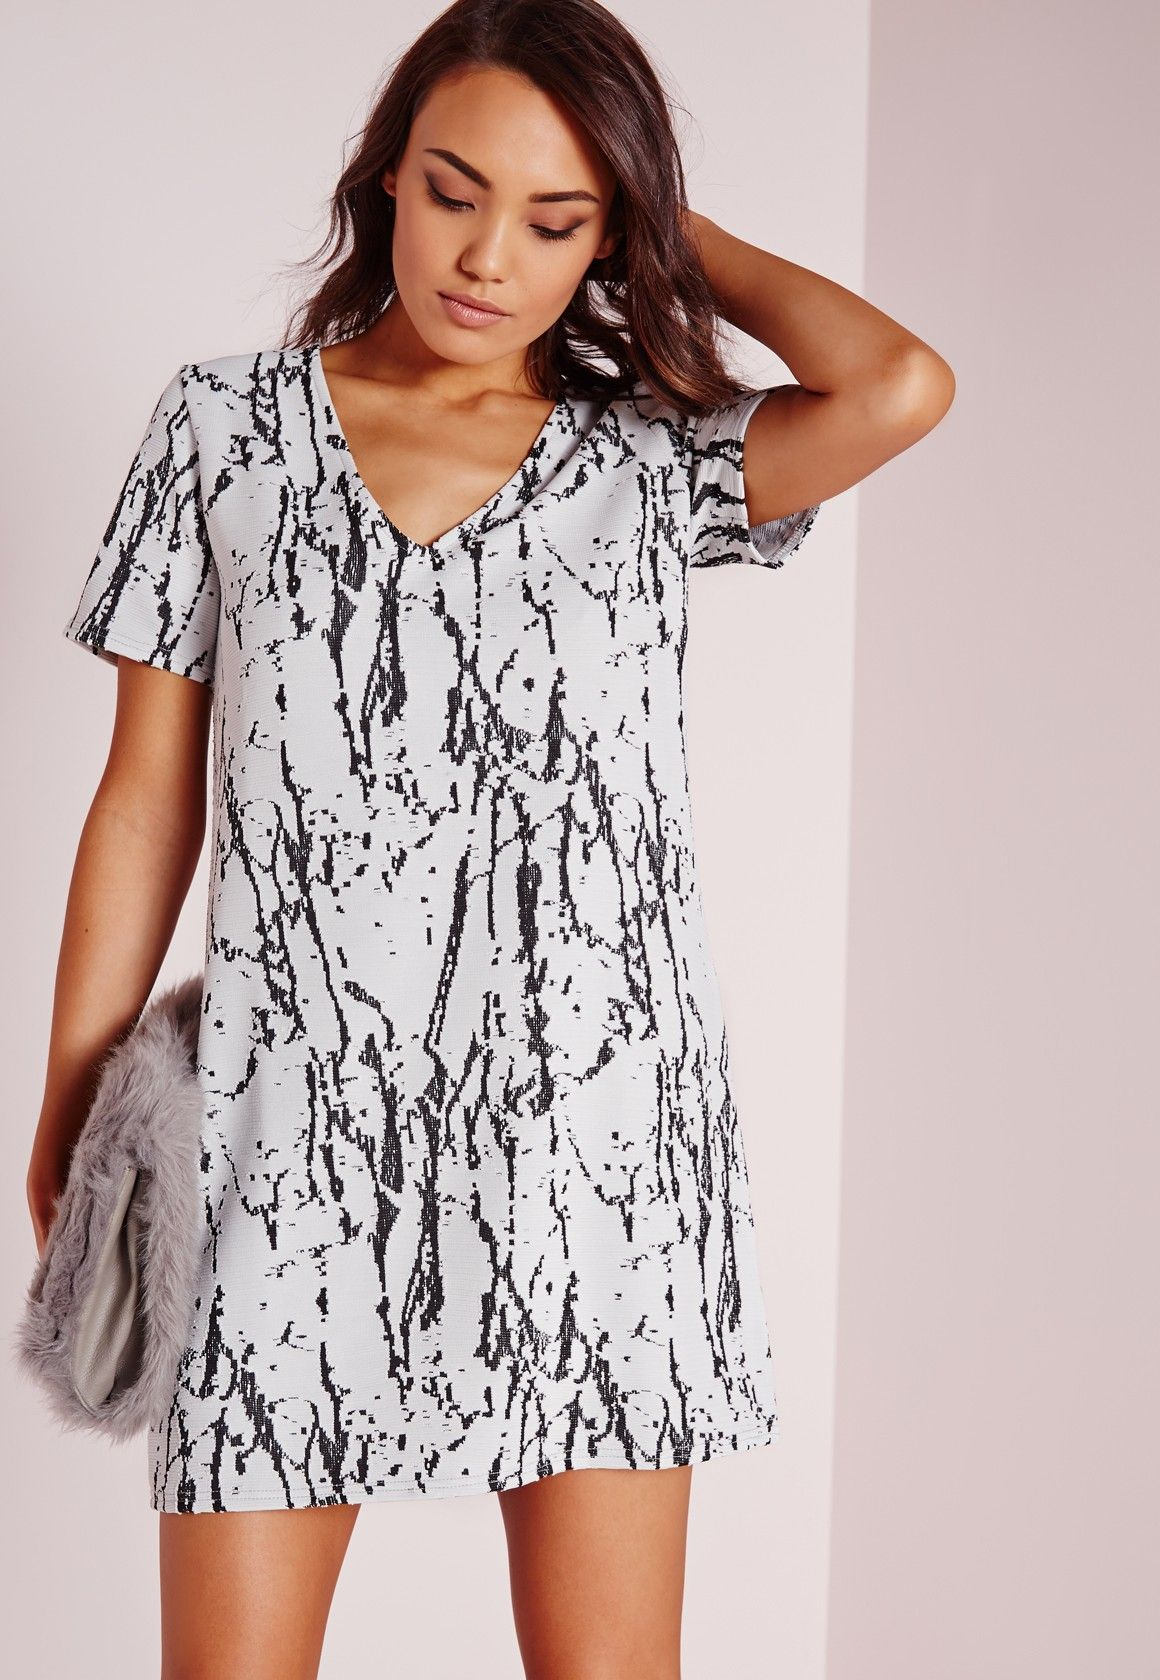 d11feab98e62 Missguided - Plunge Short Sleeve Knitted Shift Dress White Black Marble